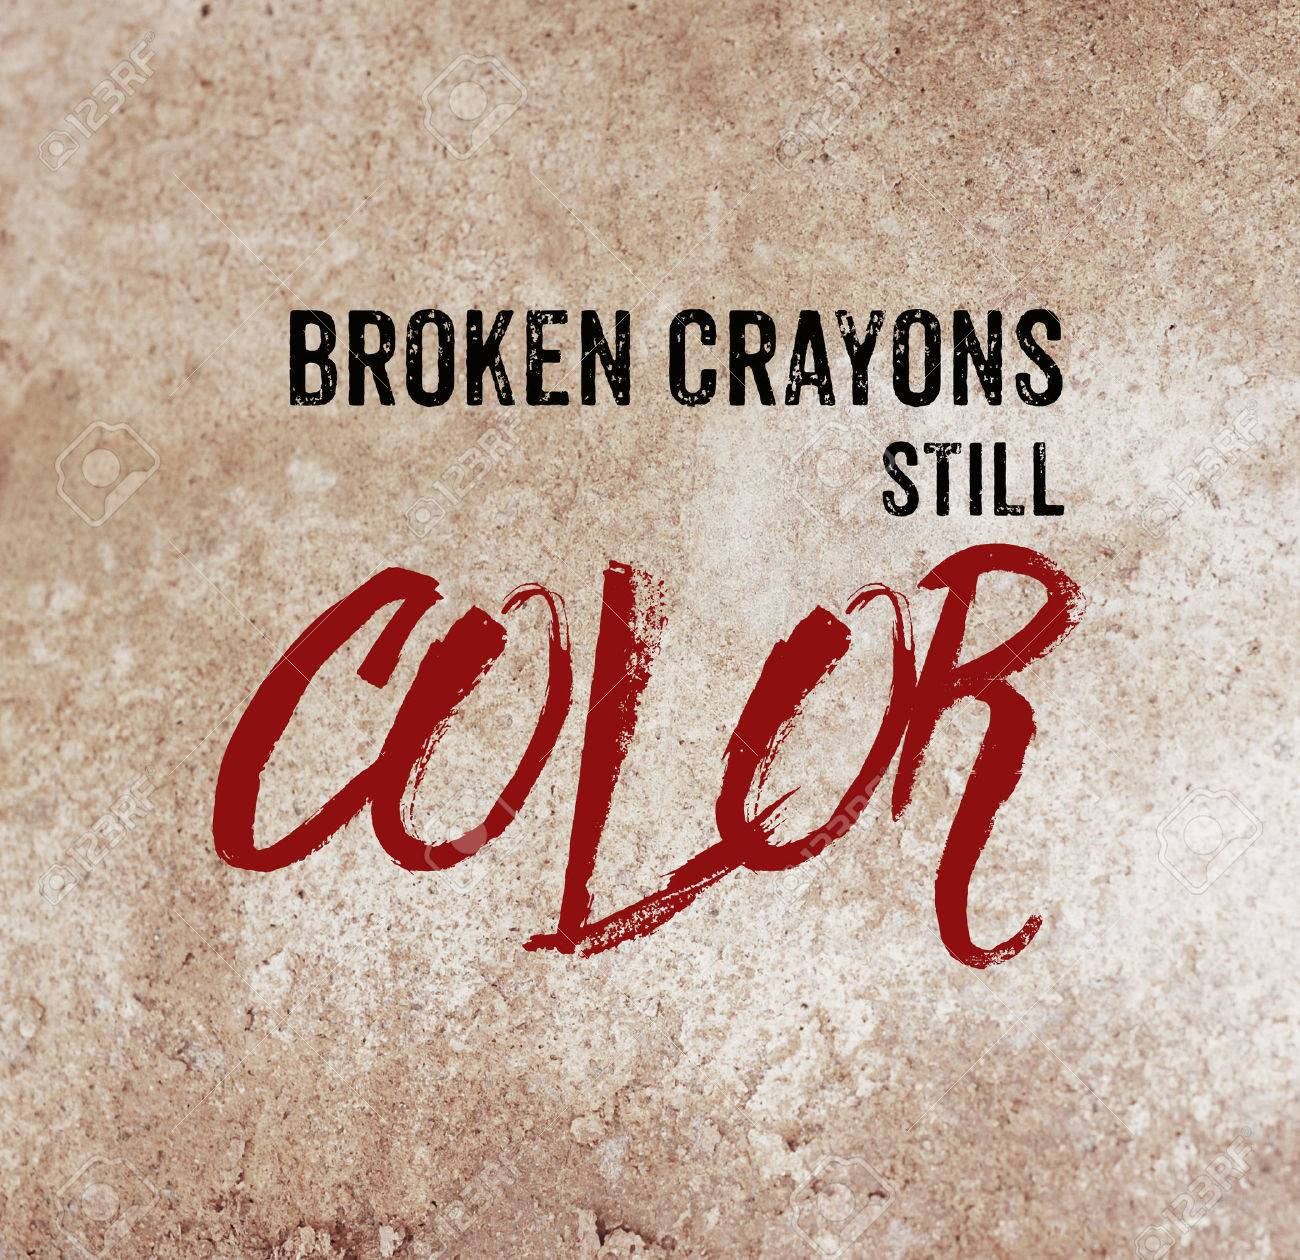 Broken Crayons Still Color Positive Motivation Life Quote